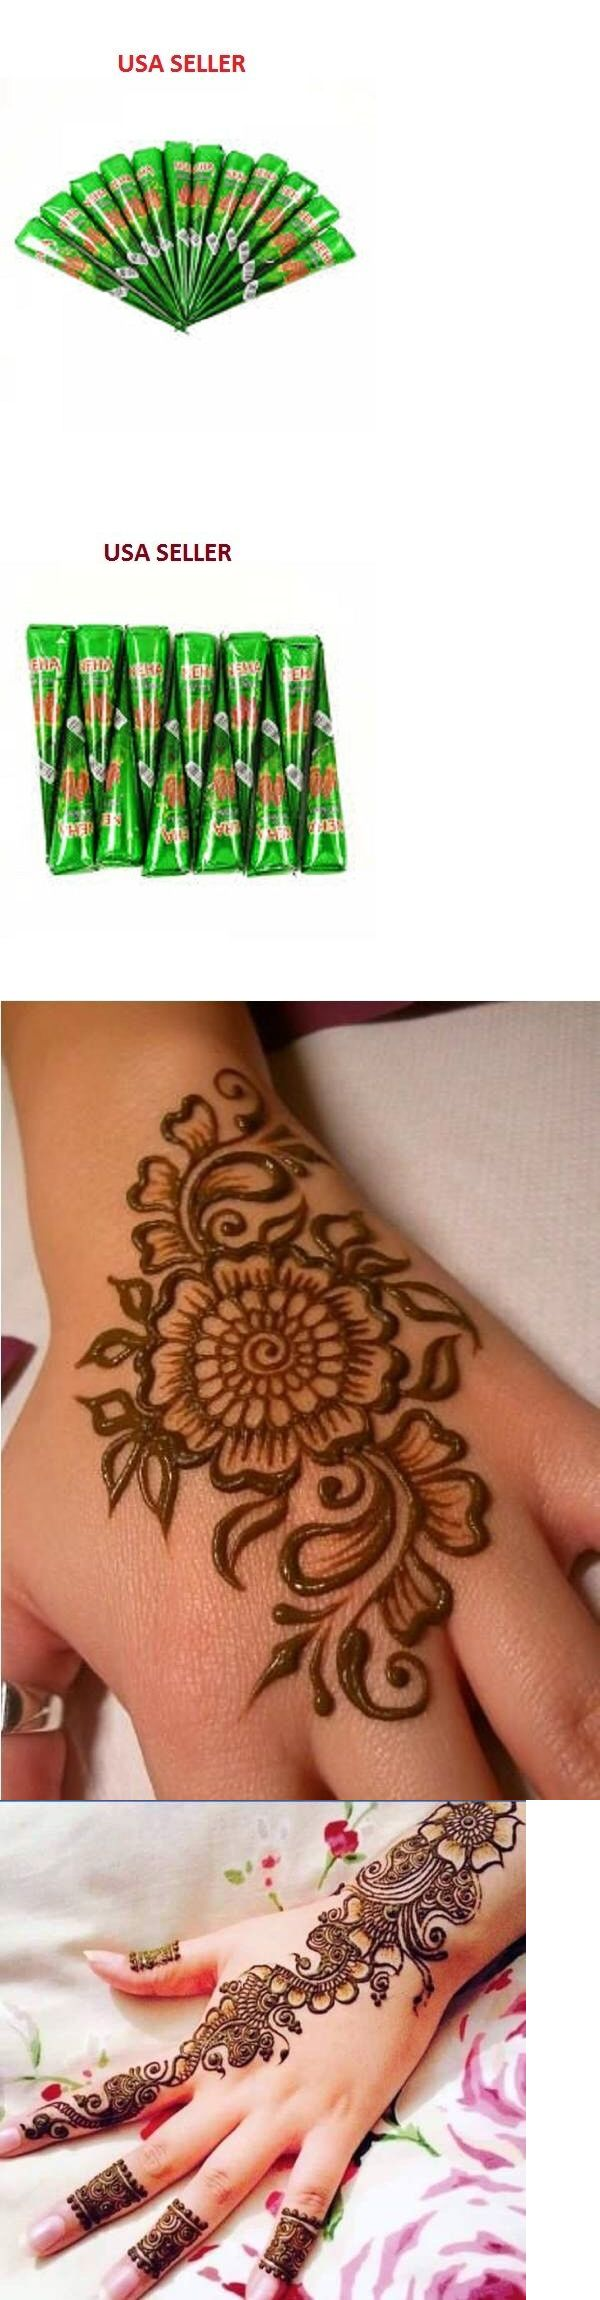 Temporary Tattoos: 36 X Neha Fast Instant Henna Cones Temporary Tattoo Body Art Mehendi Ink -> BUY IT NOW ONLY: $37.19 on eBay!